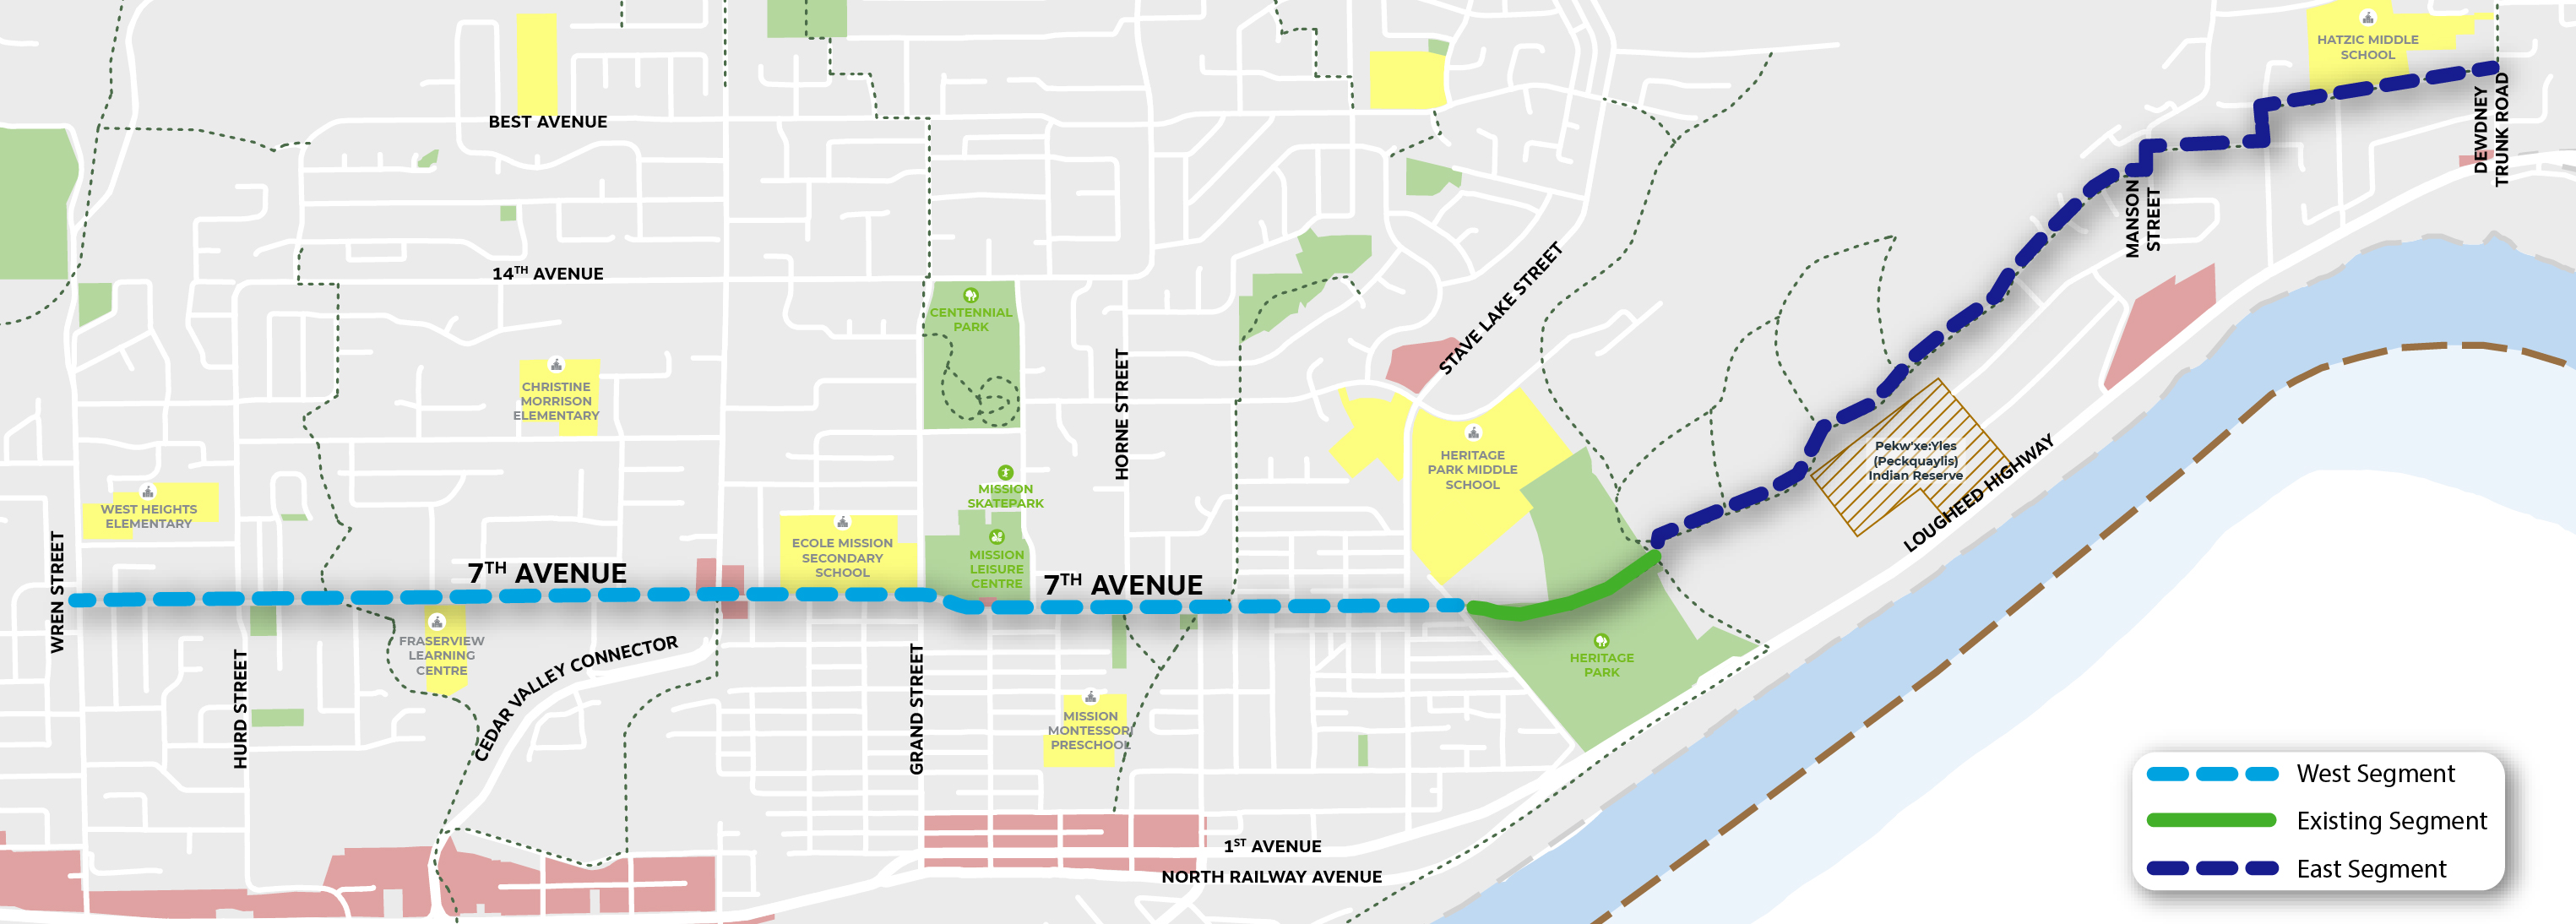 Image of 7th Avenue Greenway Route